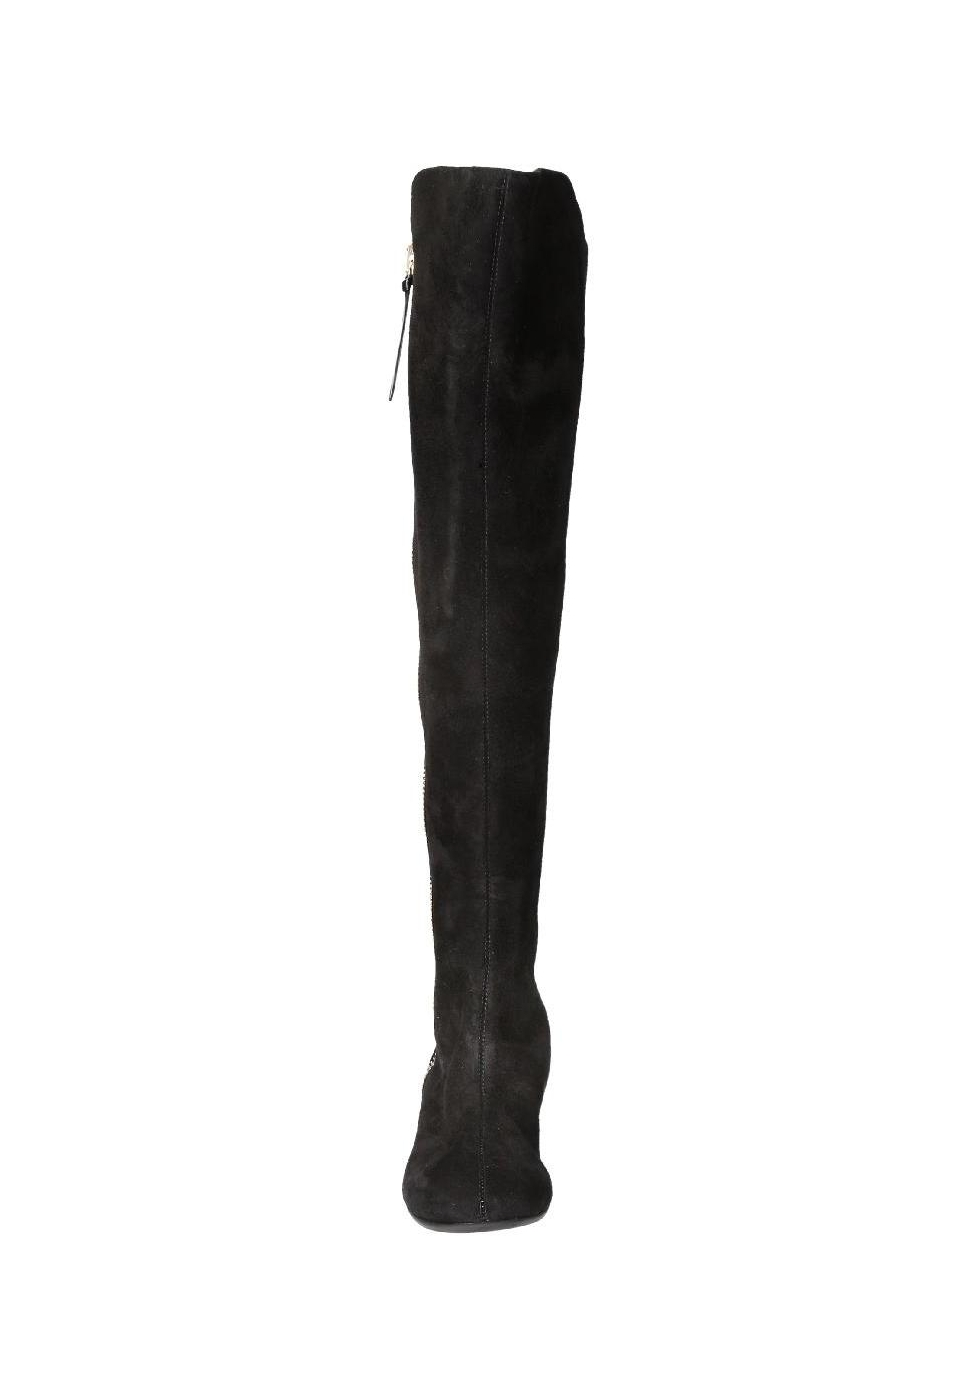 Giuseppe Zanotti thigh high boots in black Suede leather - Italian ... 30b935a882